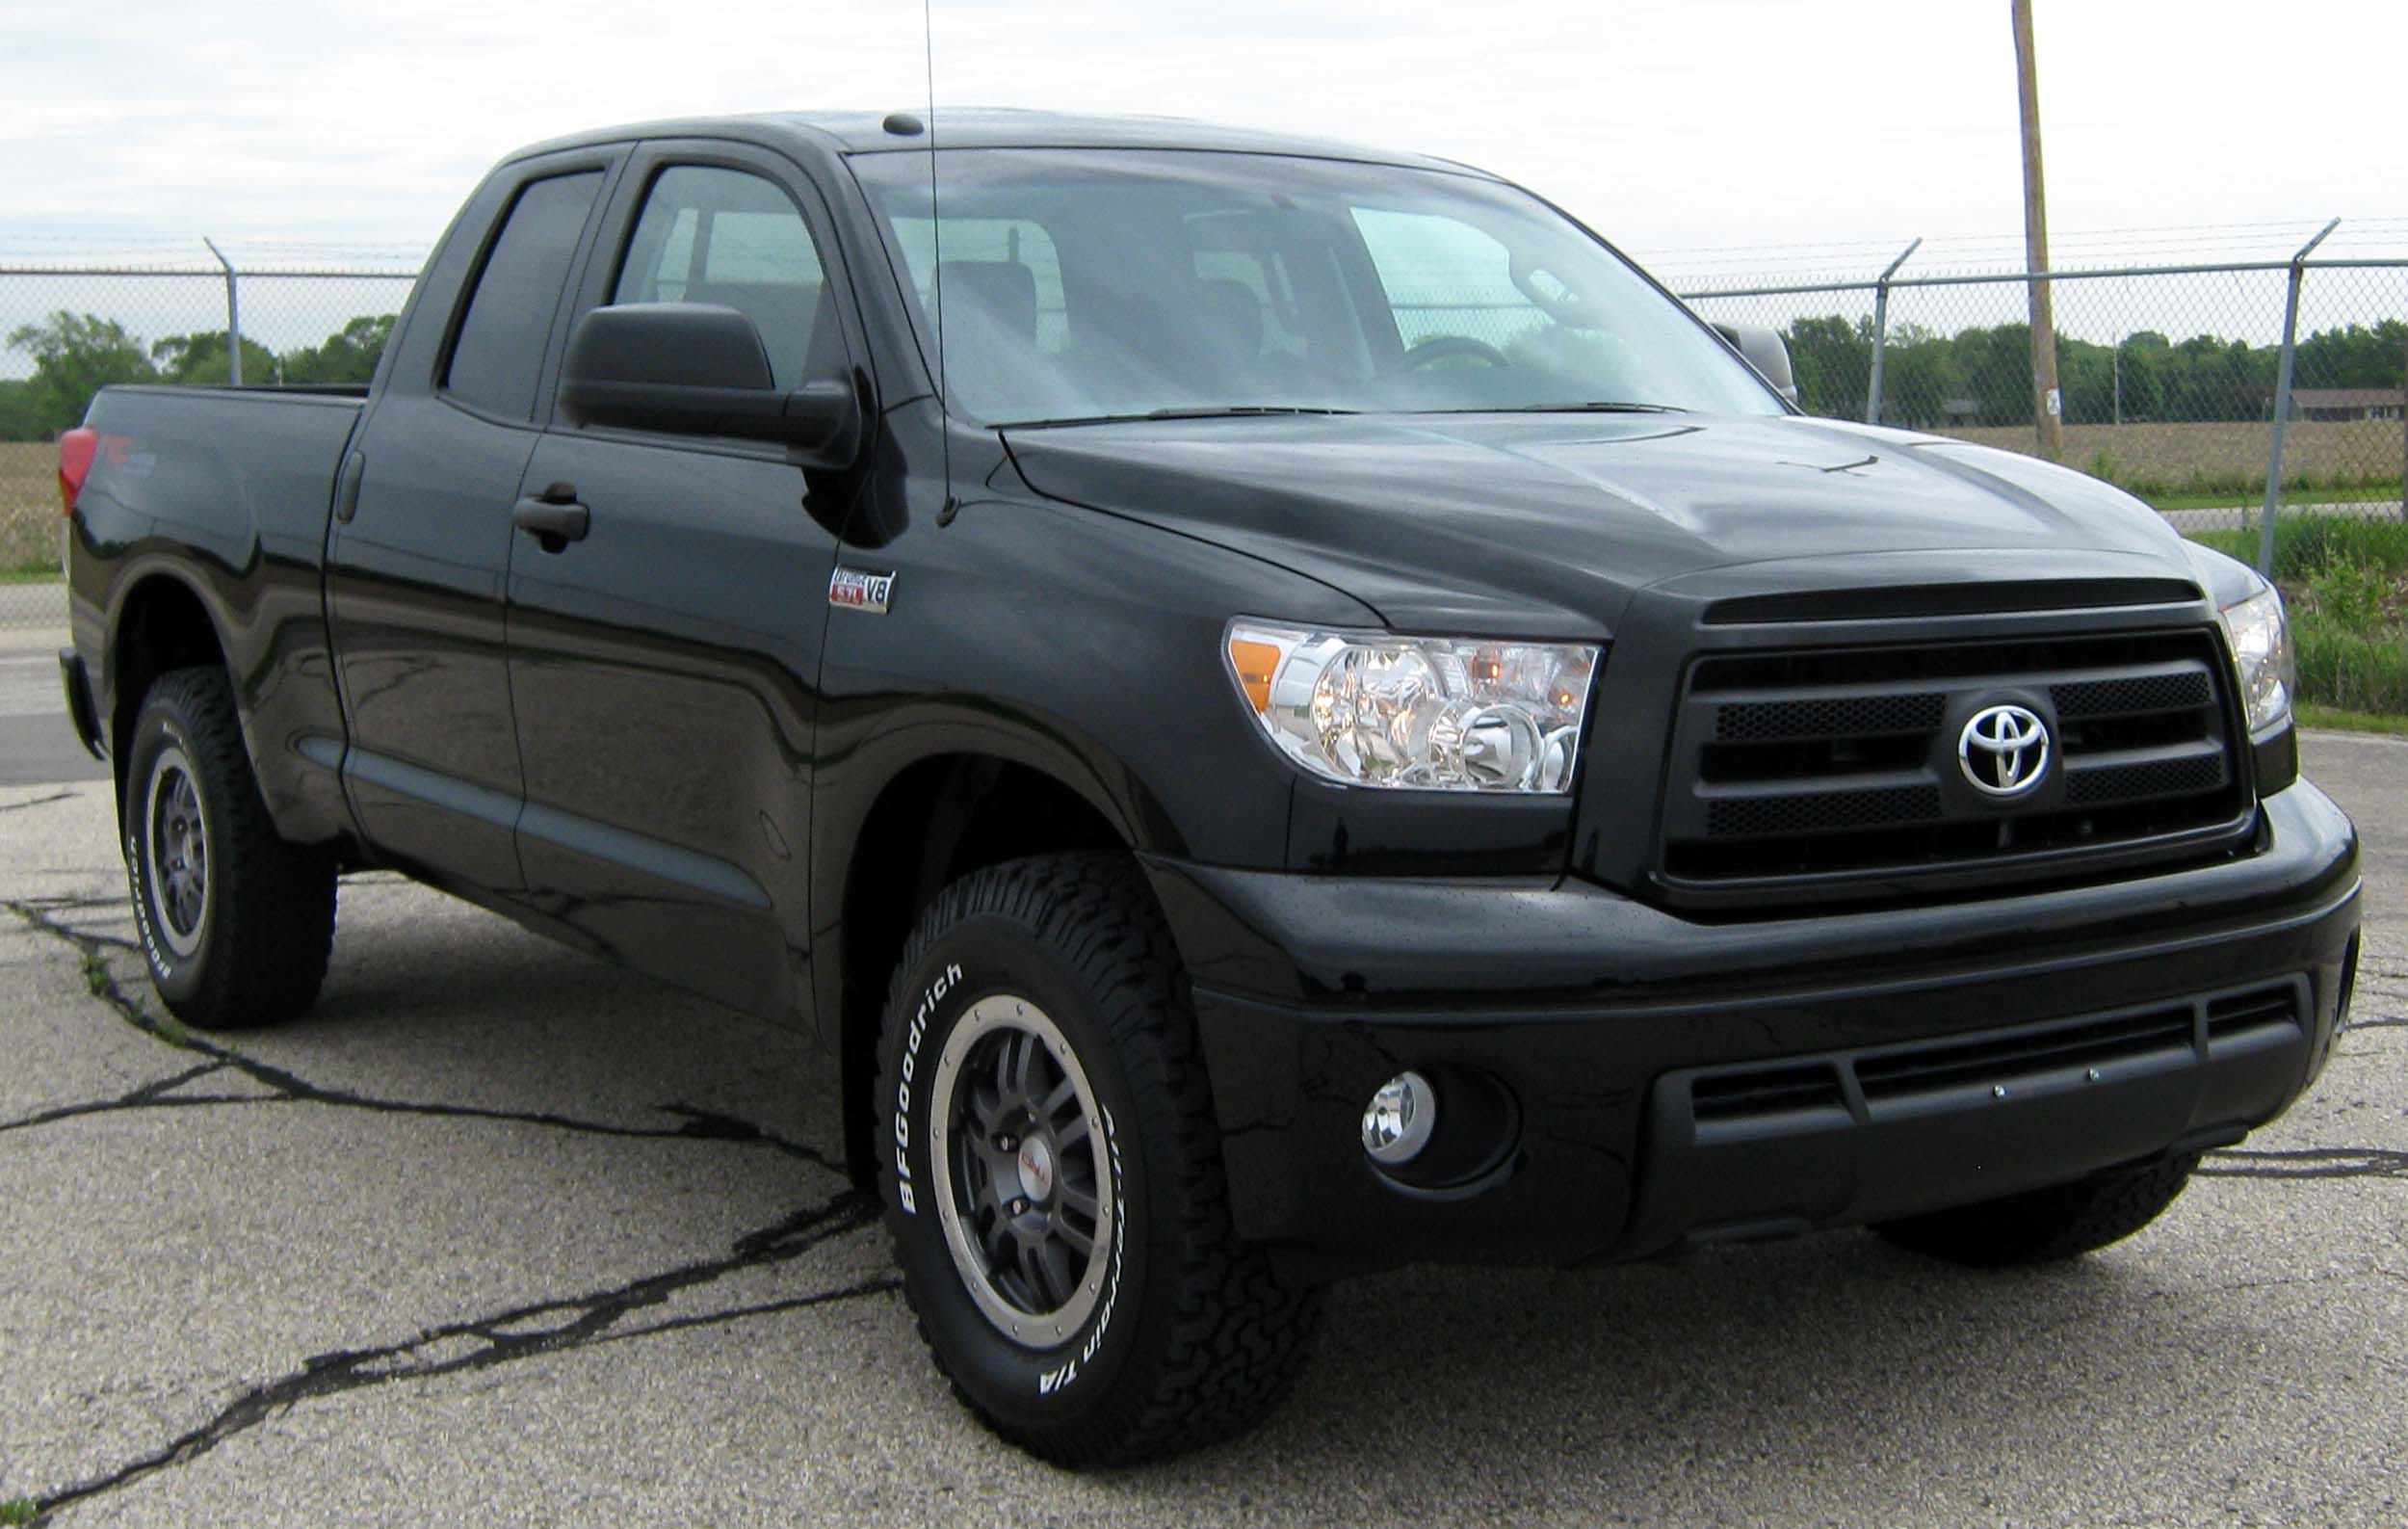 File:2010 Toyota Tundra Double Cab -- NHTSA.jpg - Wikipedia, the free